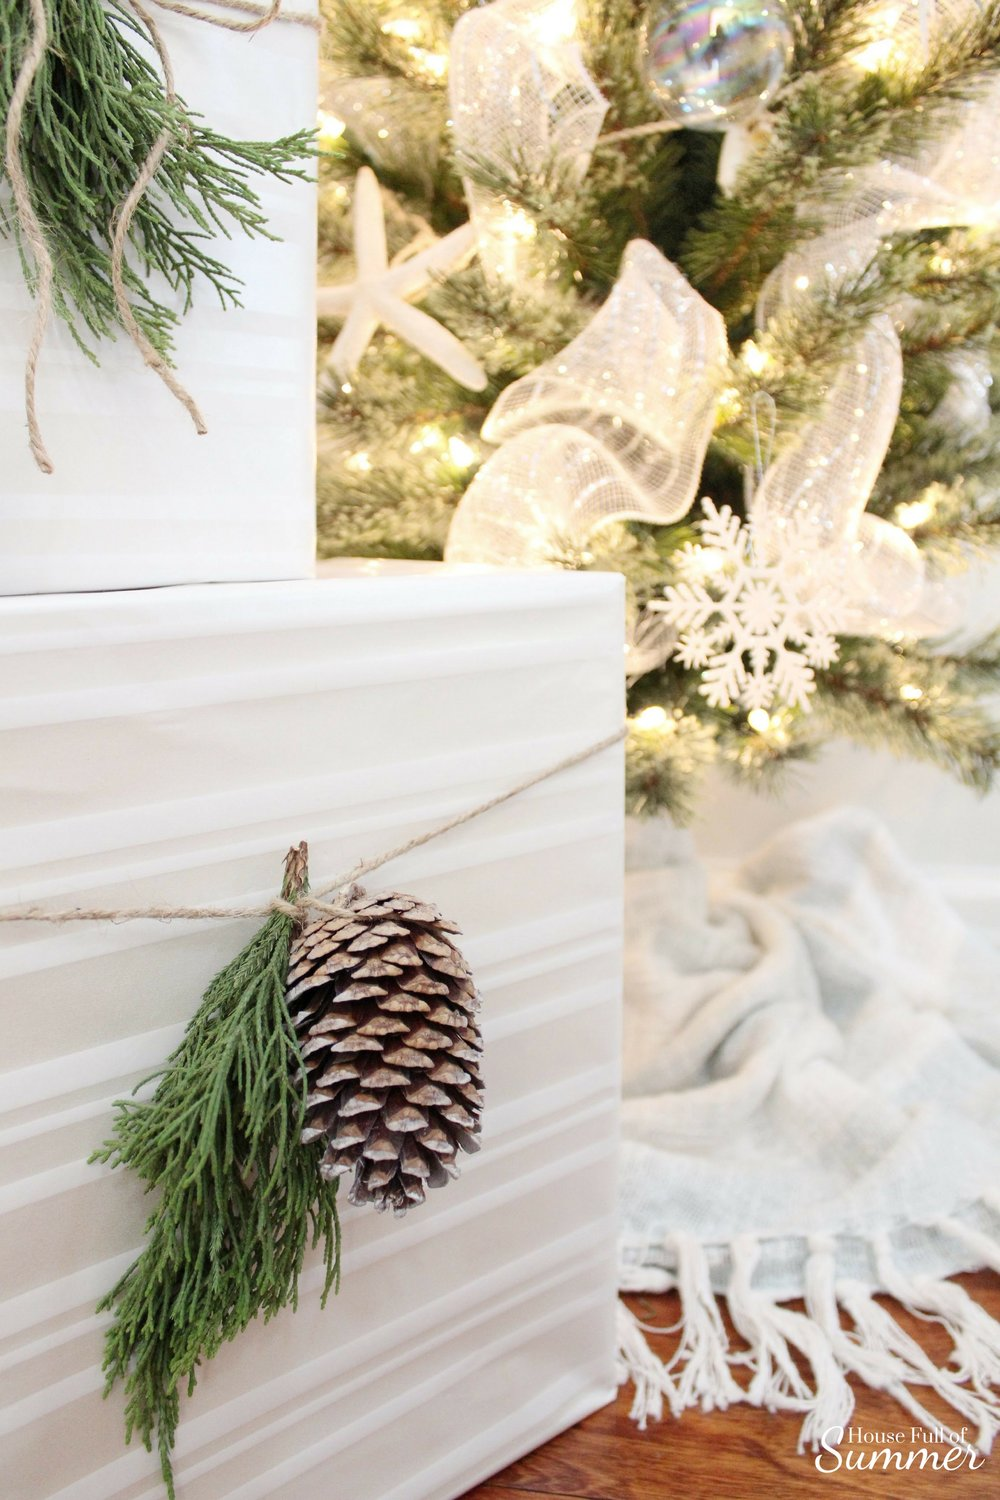 How To Make Fresh Pine Swags | House Full of Summer blog - diy christmas ideas, simple christmas decor, fresh greenery in christmas decor, holiday decor, coastal home christmas decor, classy decor, beachy christmas ideas, home interior, chair swag, pine swag, misteltoe, garland, gift wrapping ideas